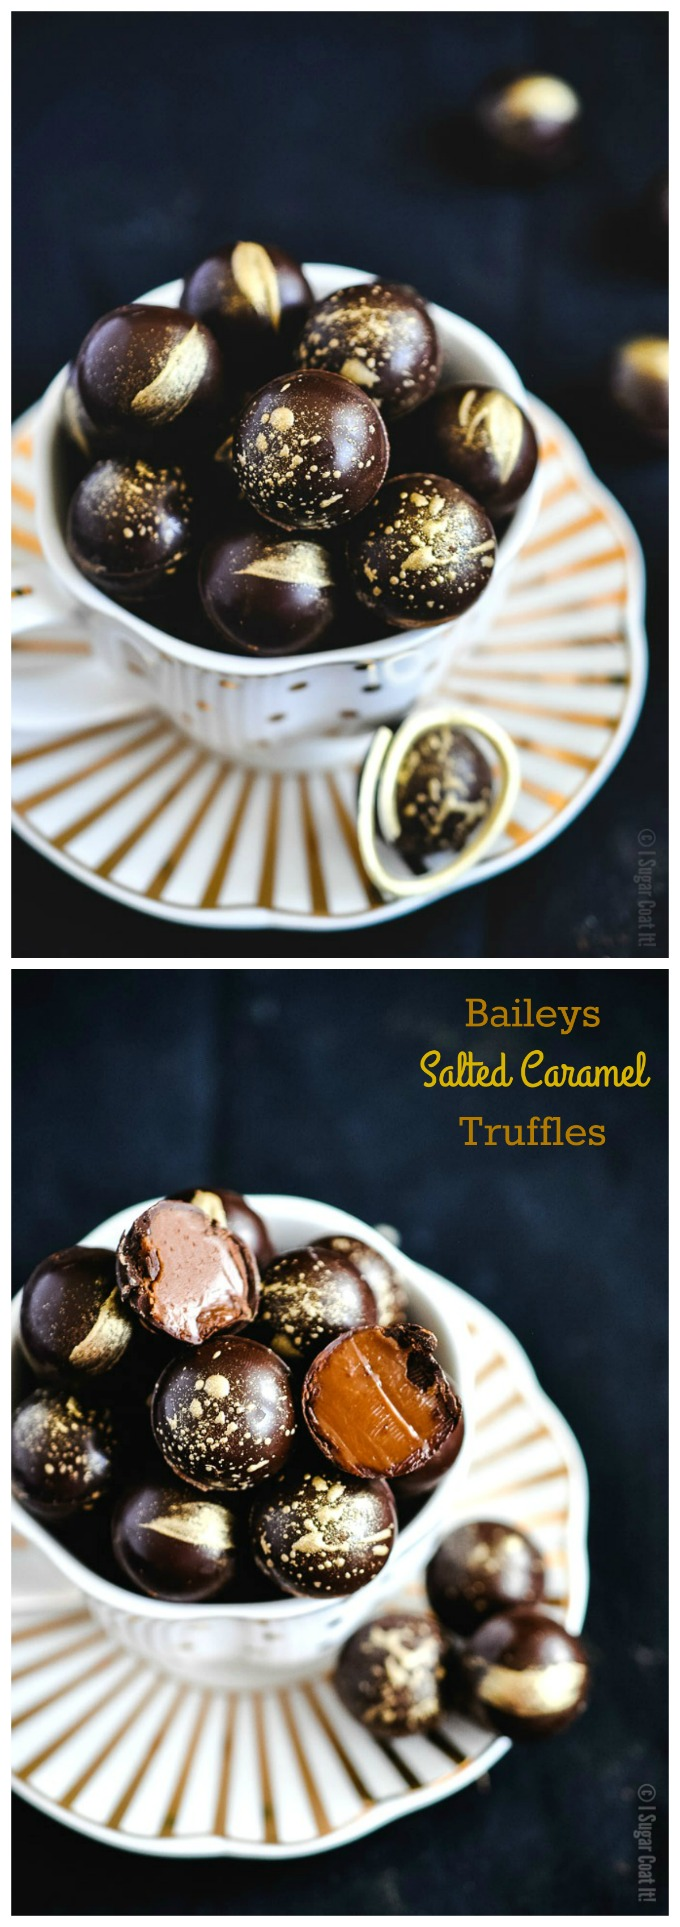 These Baileys Salted Caramel Dark Chocolate Truffles are melt-in-your-mouth magical with a thin dark chocolate shell filled with a creamy Baileys Salted Caramel Irish Cream ganache.